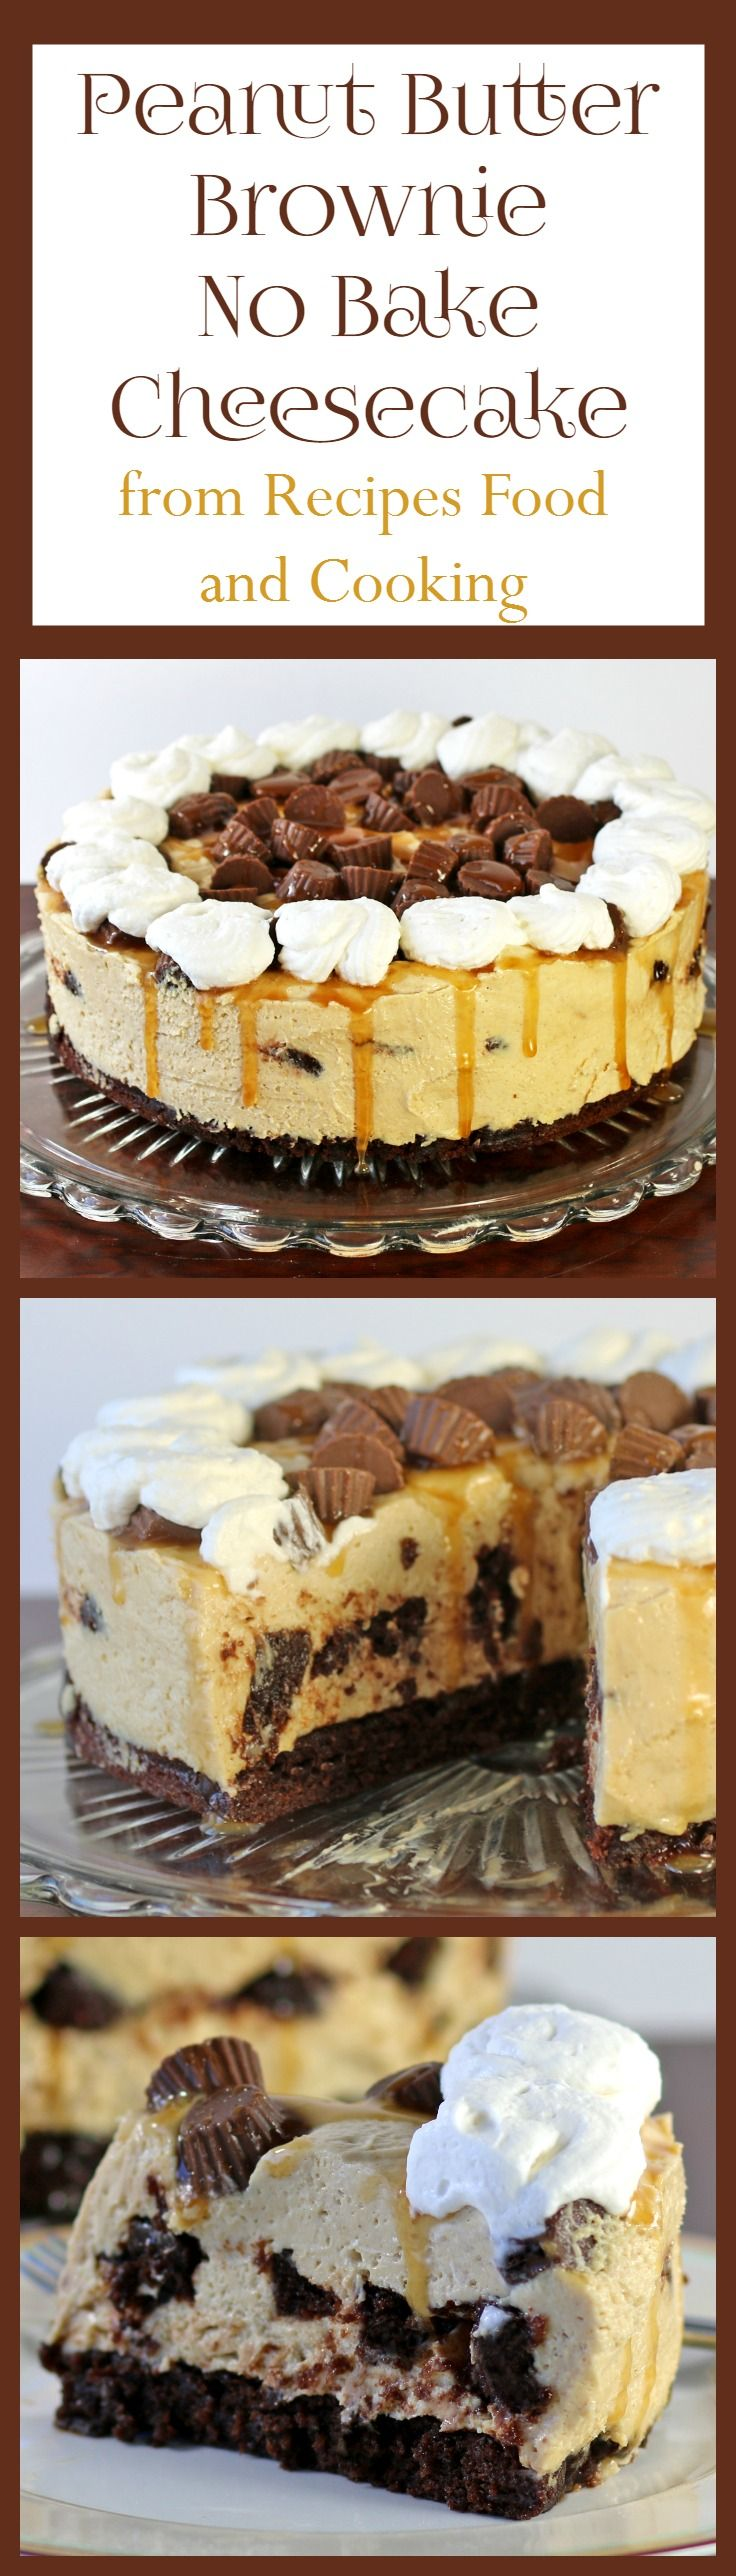 Peanut Butter Brownie No Bake Cheesecake -No bake peanut butter cheesecake with a brownie crust and brownie middle. #SundaySupper - Recipes, Food and Cooking